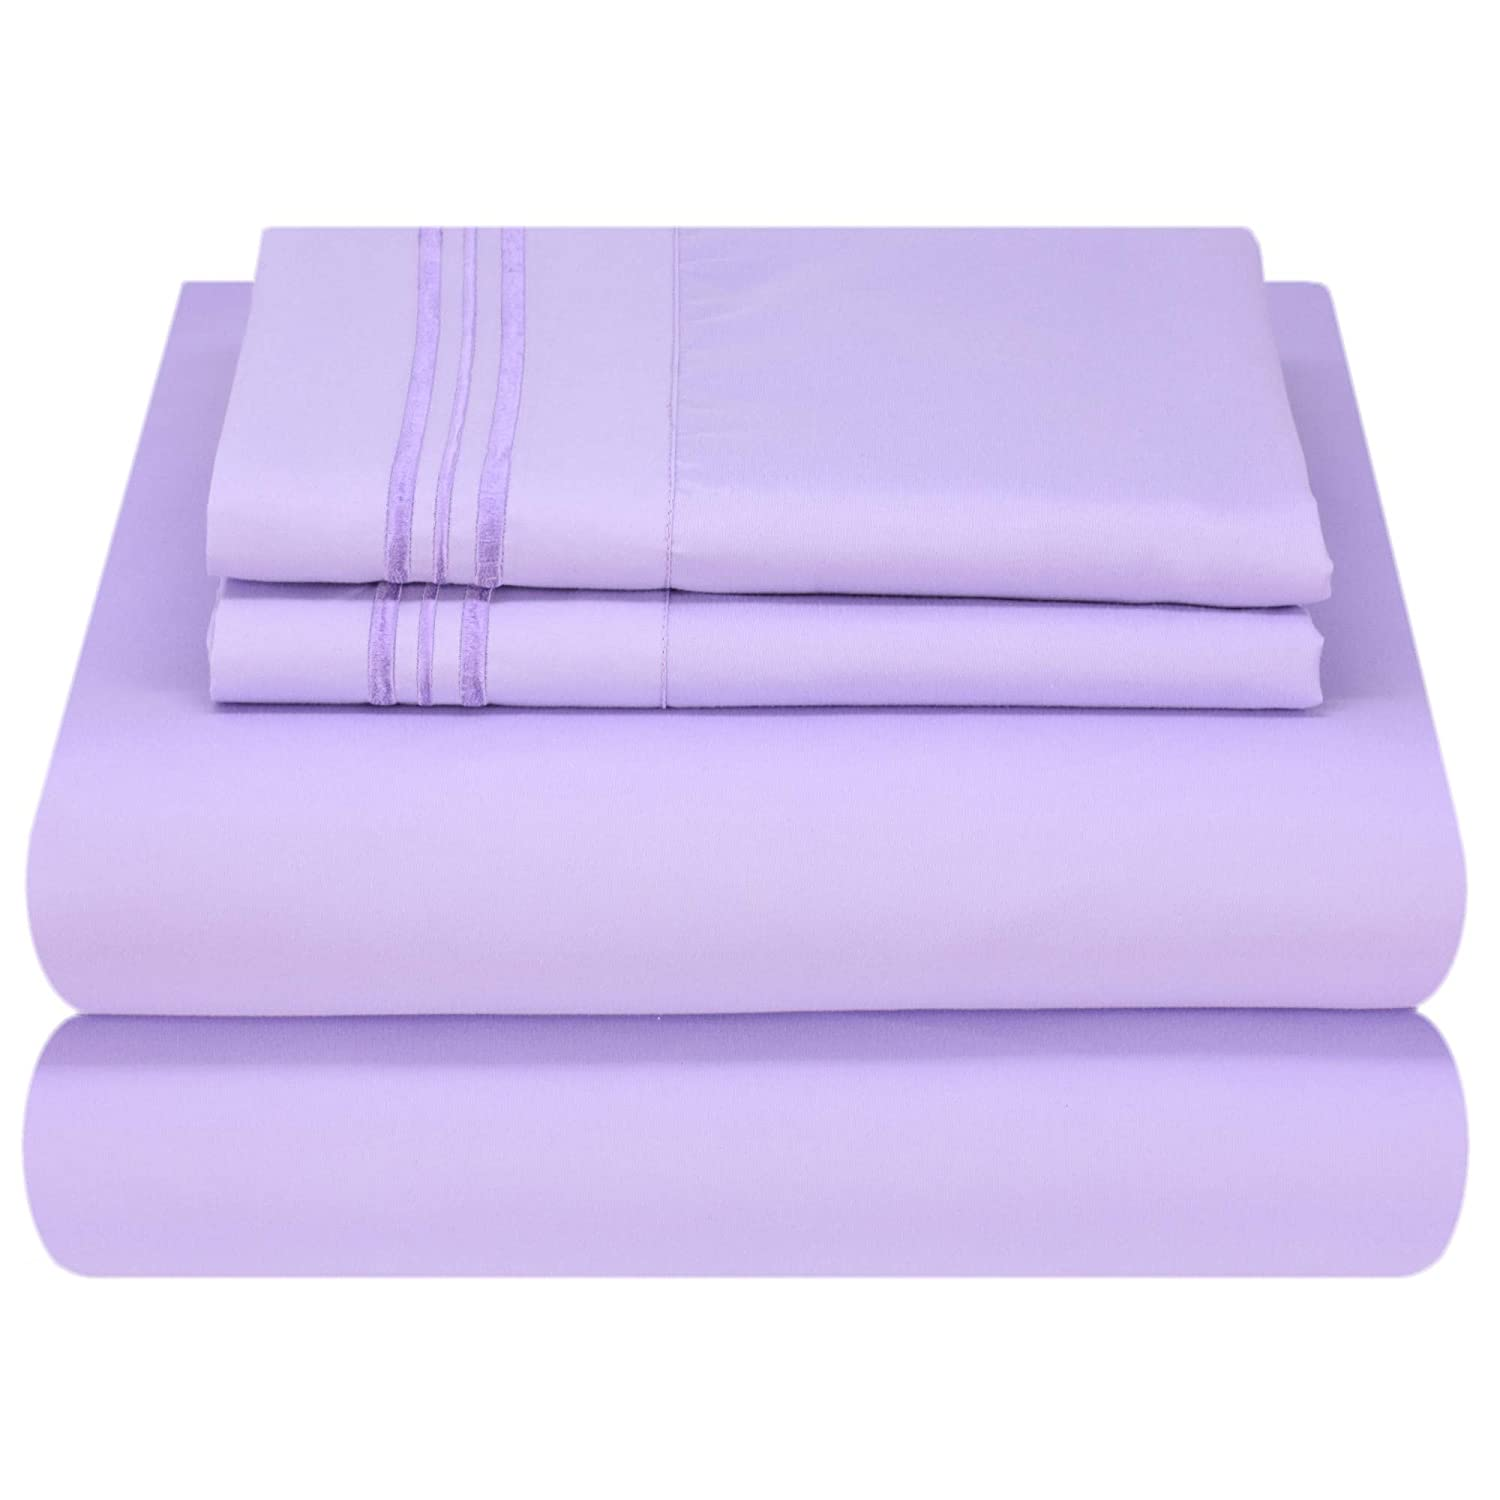 Mezzati Luxury Bed Sheet Set - Soft and Comfortable 1800 Prestige Collection - Brushed Microfiber Bedding (Lilac Lavender, Full Size)